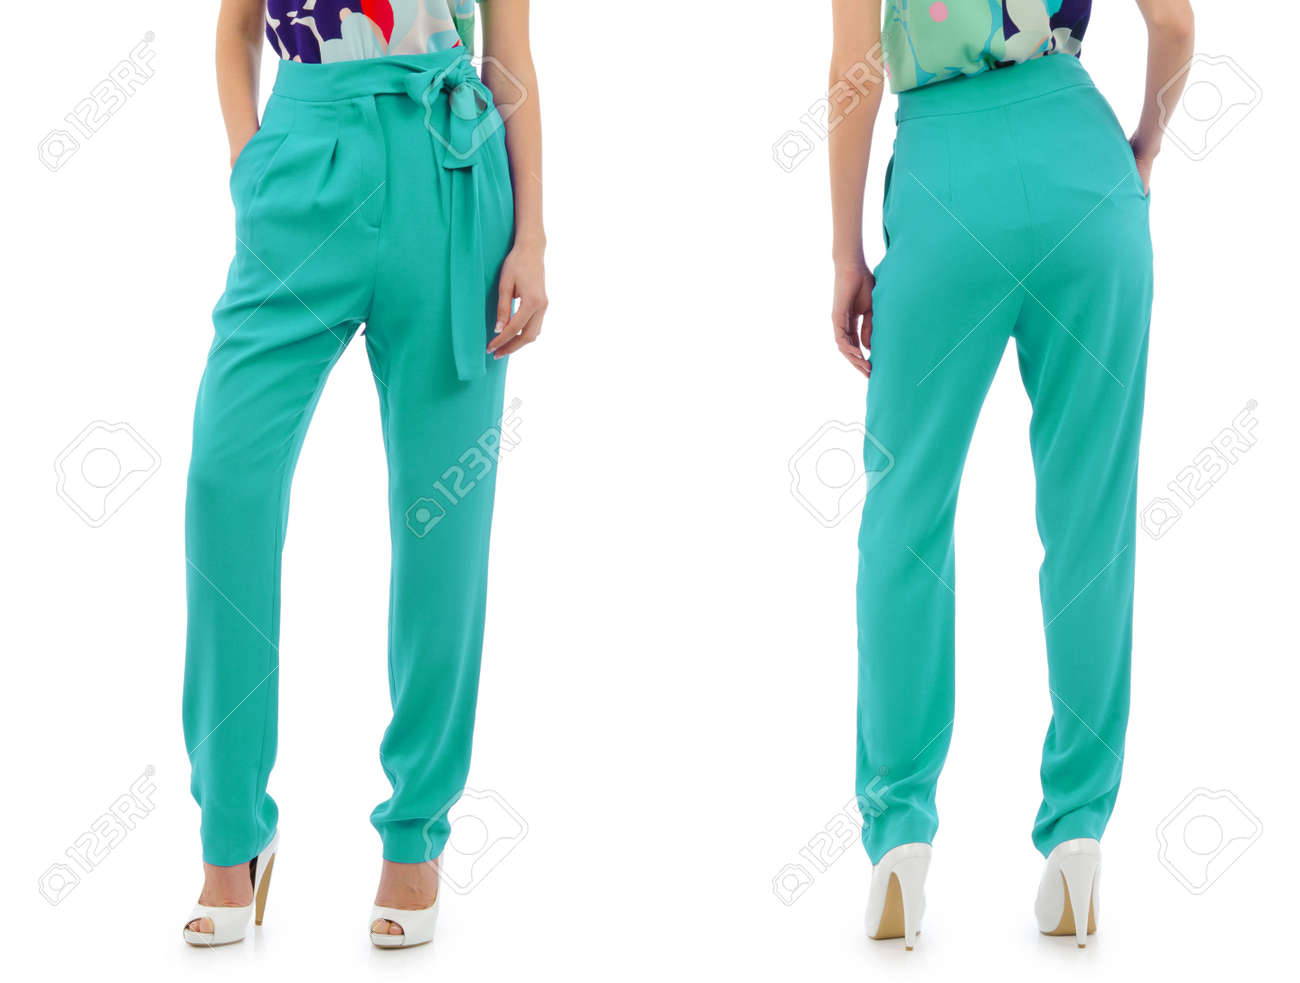 Trousers on the model isolated Stock Photo - 24114037